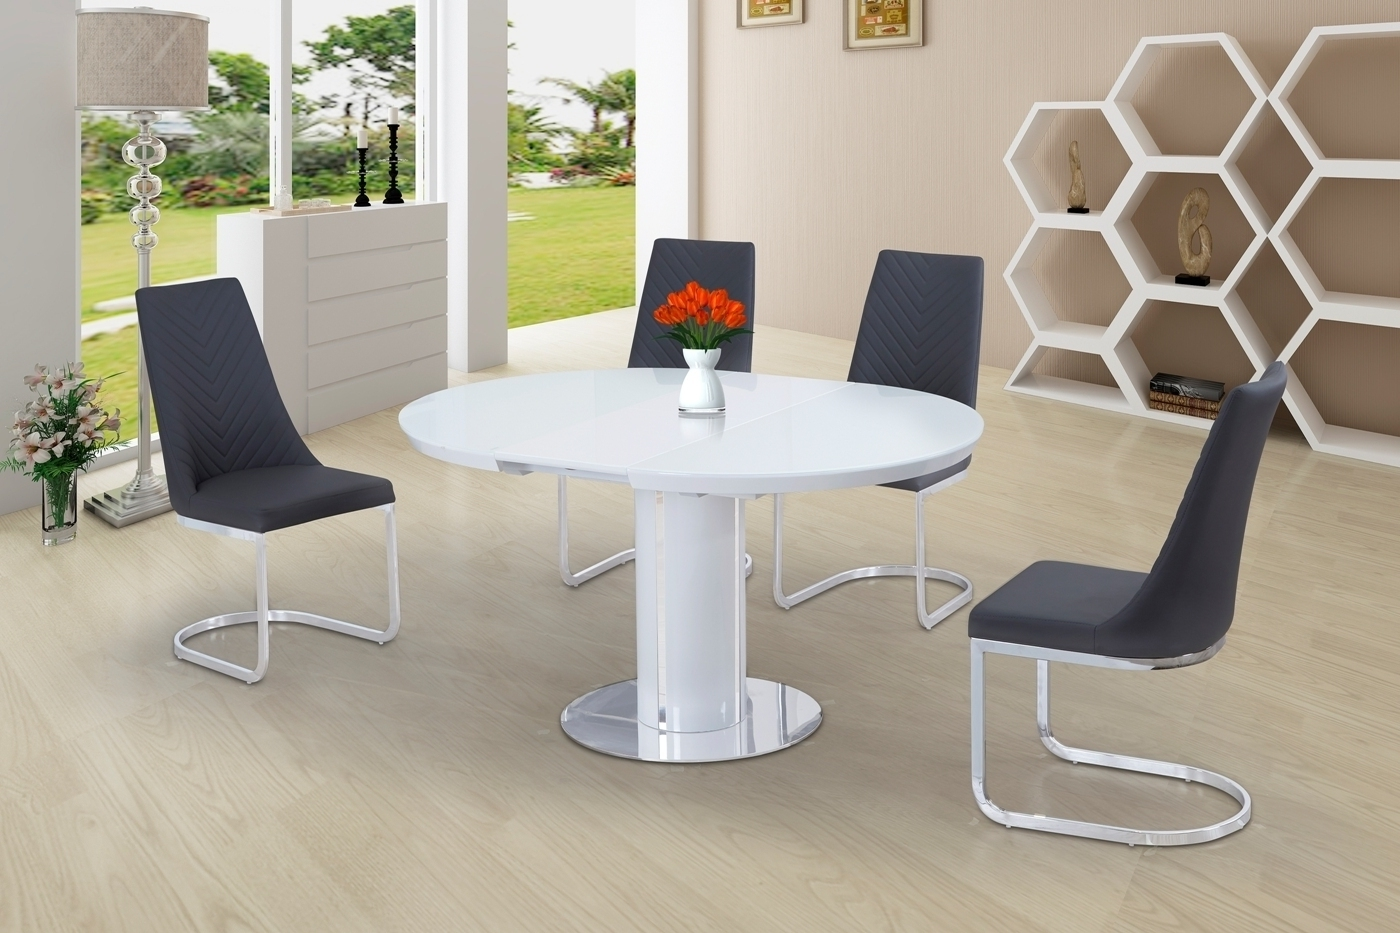 Round White Glass High Gloss Dining Table And 6 Grey Chairs With Regard To Well Liked Grey Gloss Dining Tables (View 20 of 25)